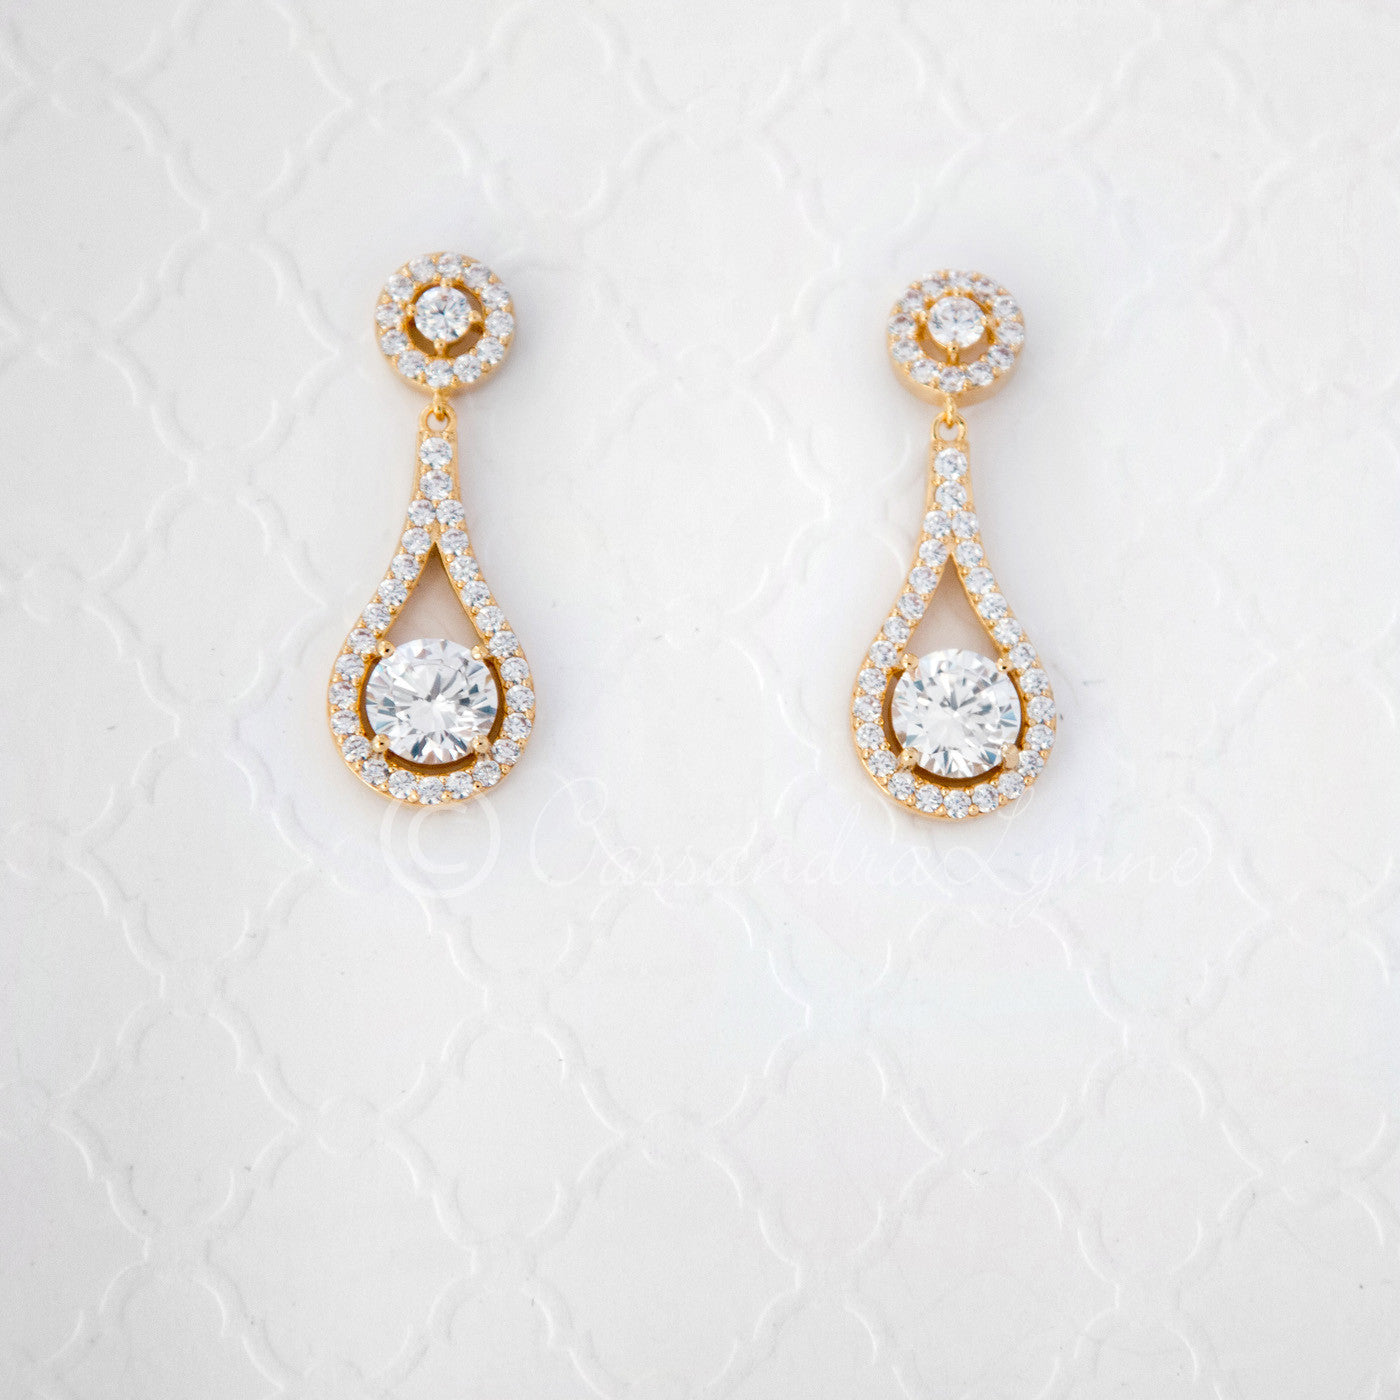 849af688a Cubic Zirconia Drop Earrings Teardrop Shaped - Cassandra Lynne